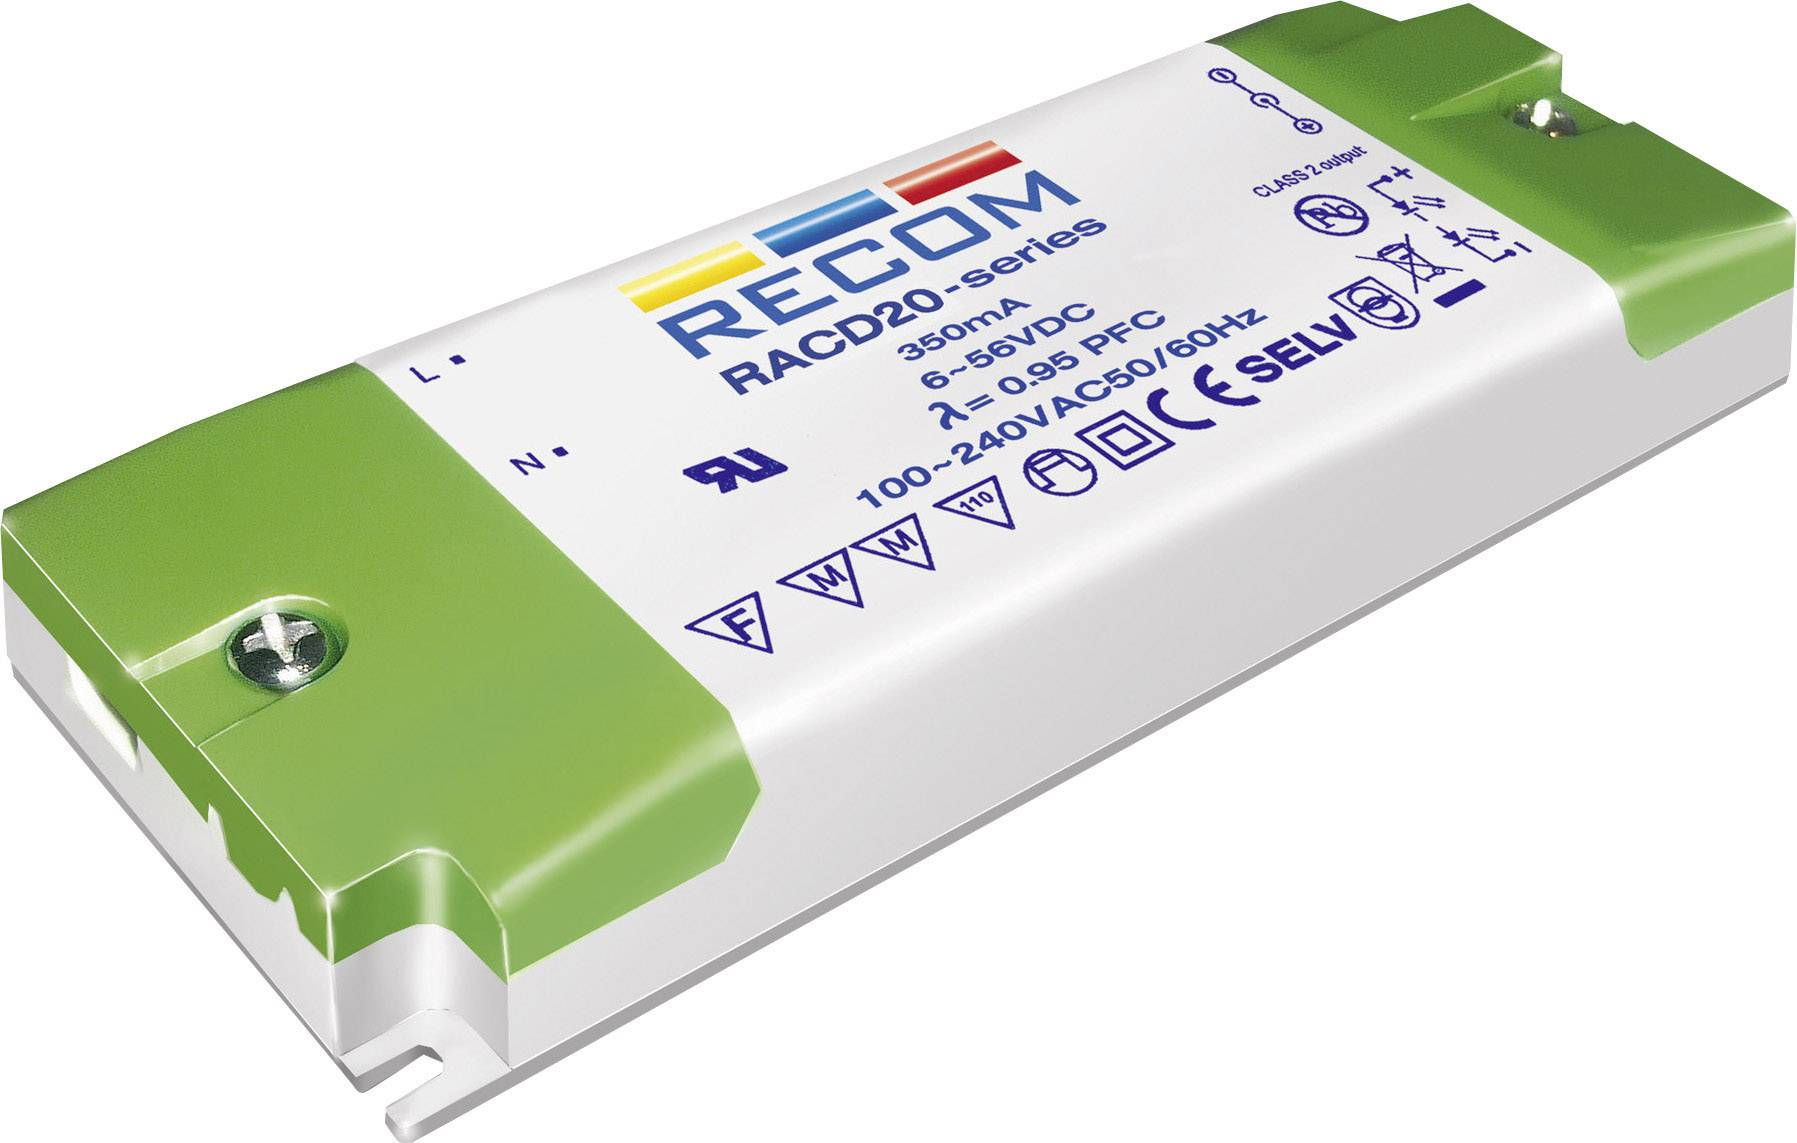 LED driver Recom Lighting RACD20-500, 20 W (max), 0.5 A, 6 - 40 V/DC